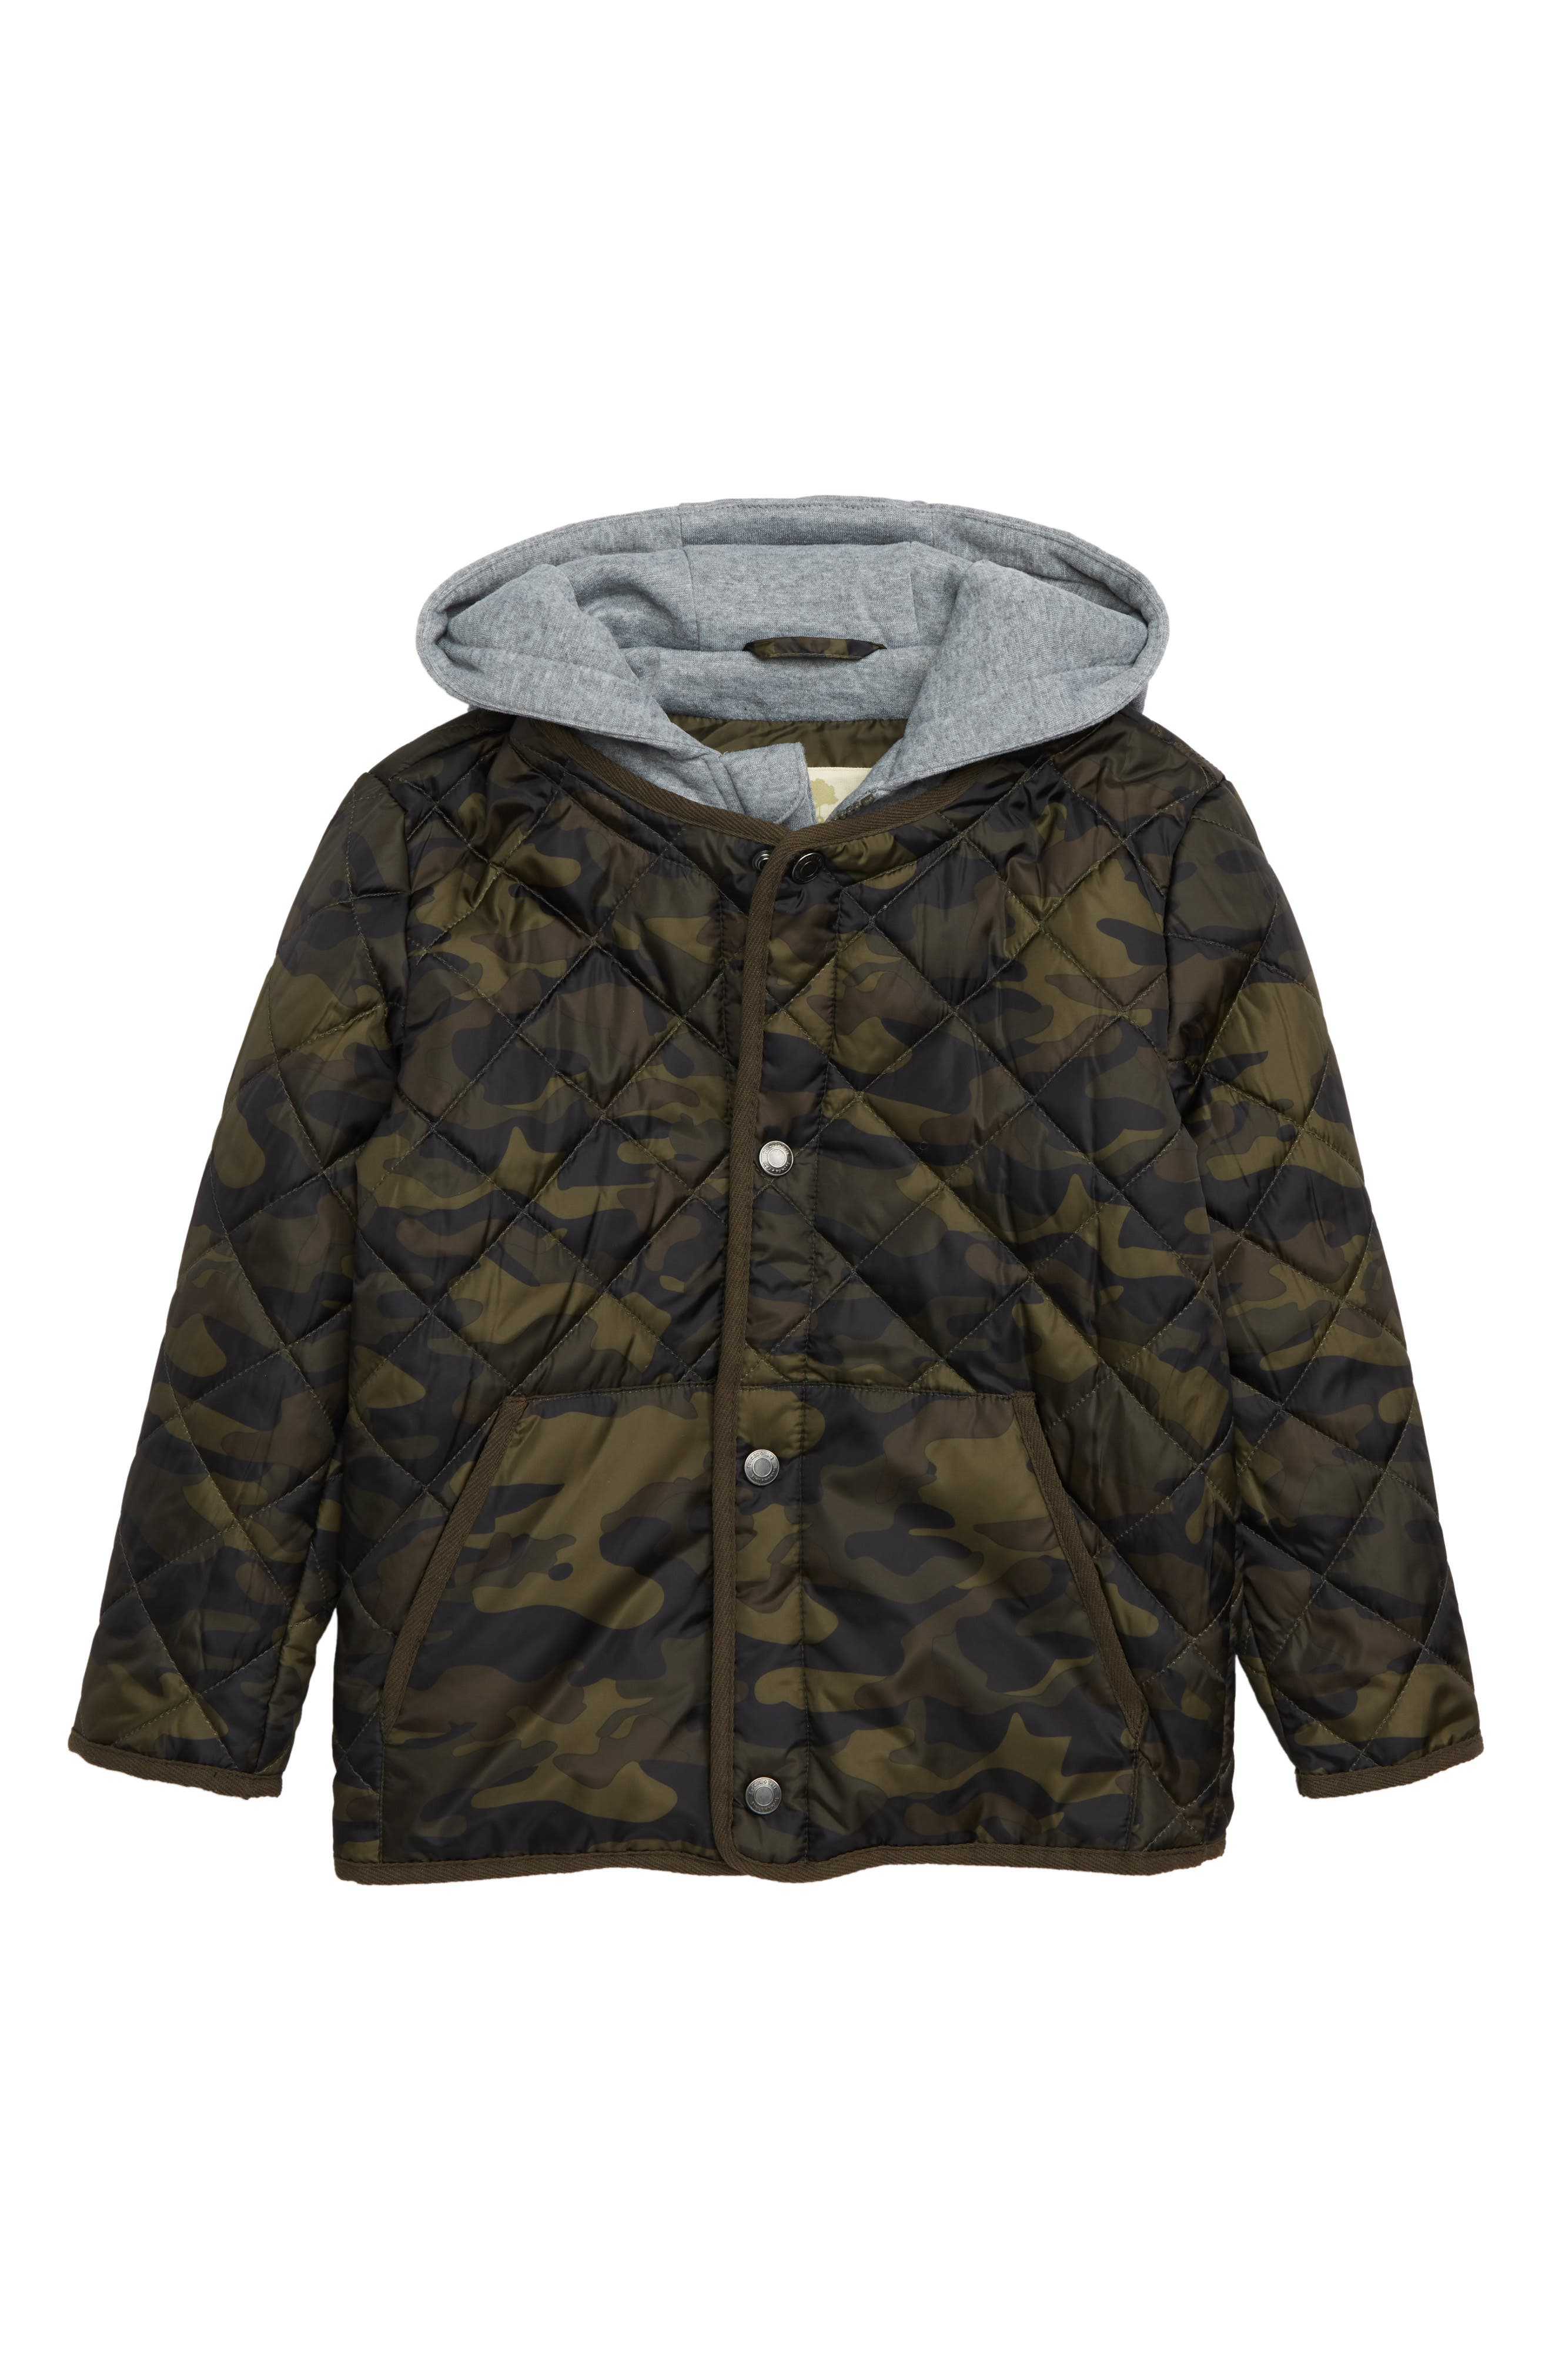 Quilted Camouflage Jacket,                         Main,                         color, OLIVE SARMA CAMOUFLAGE